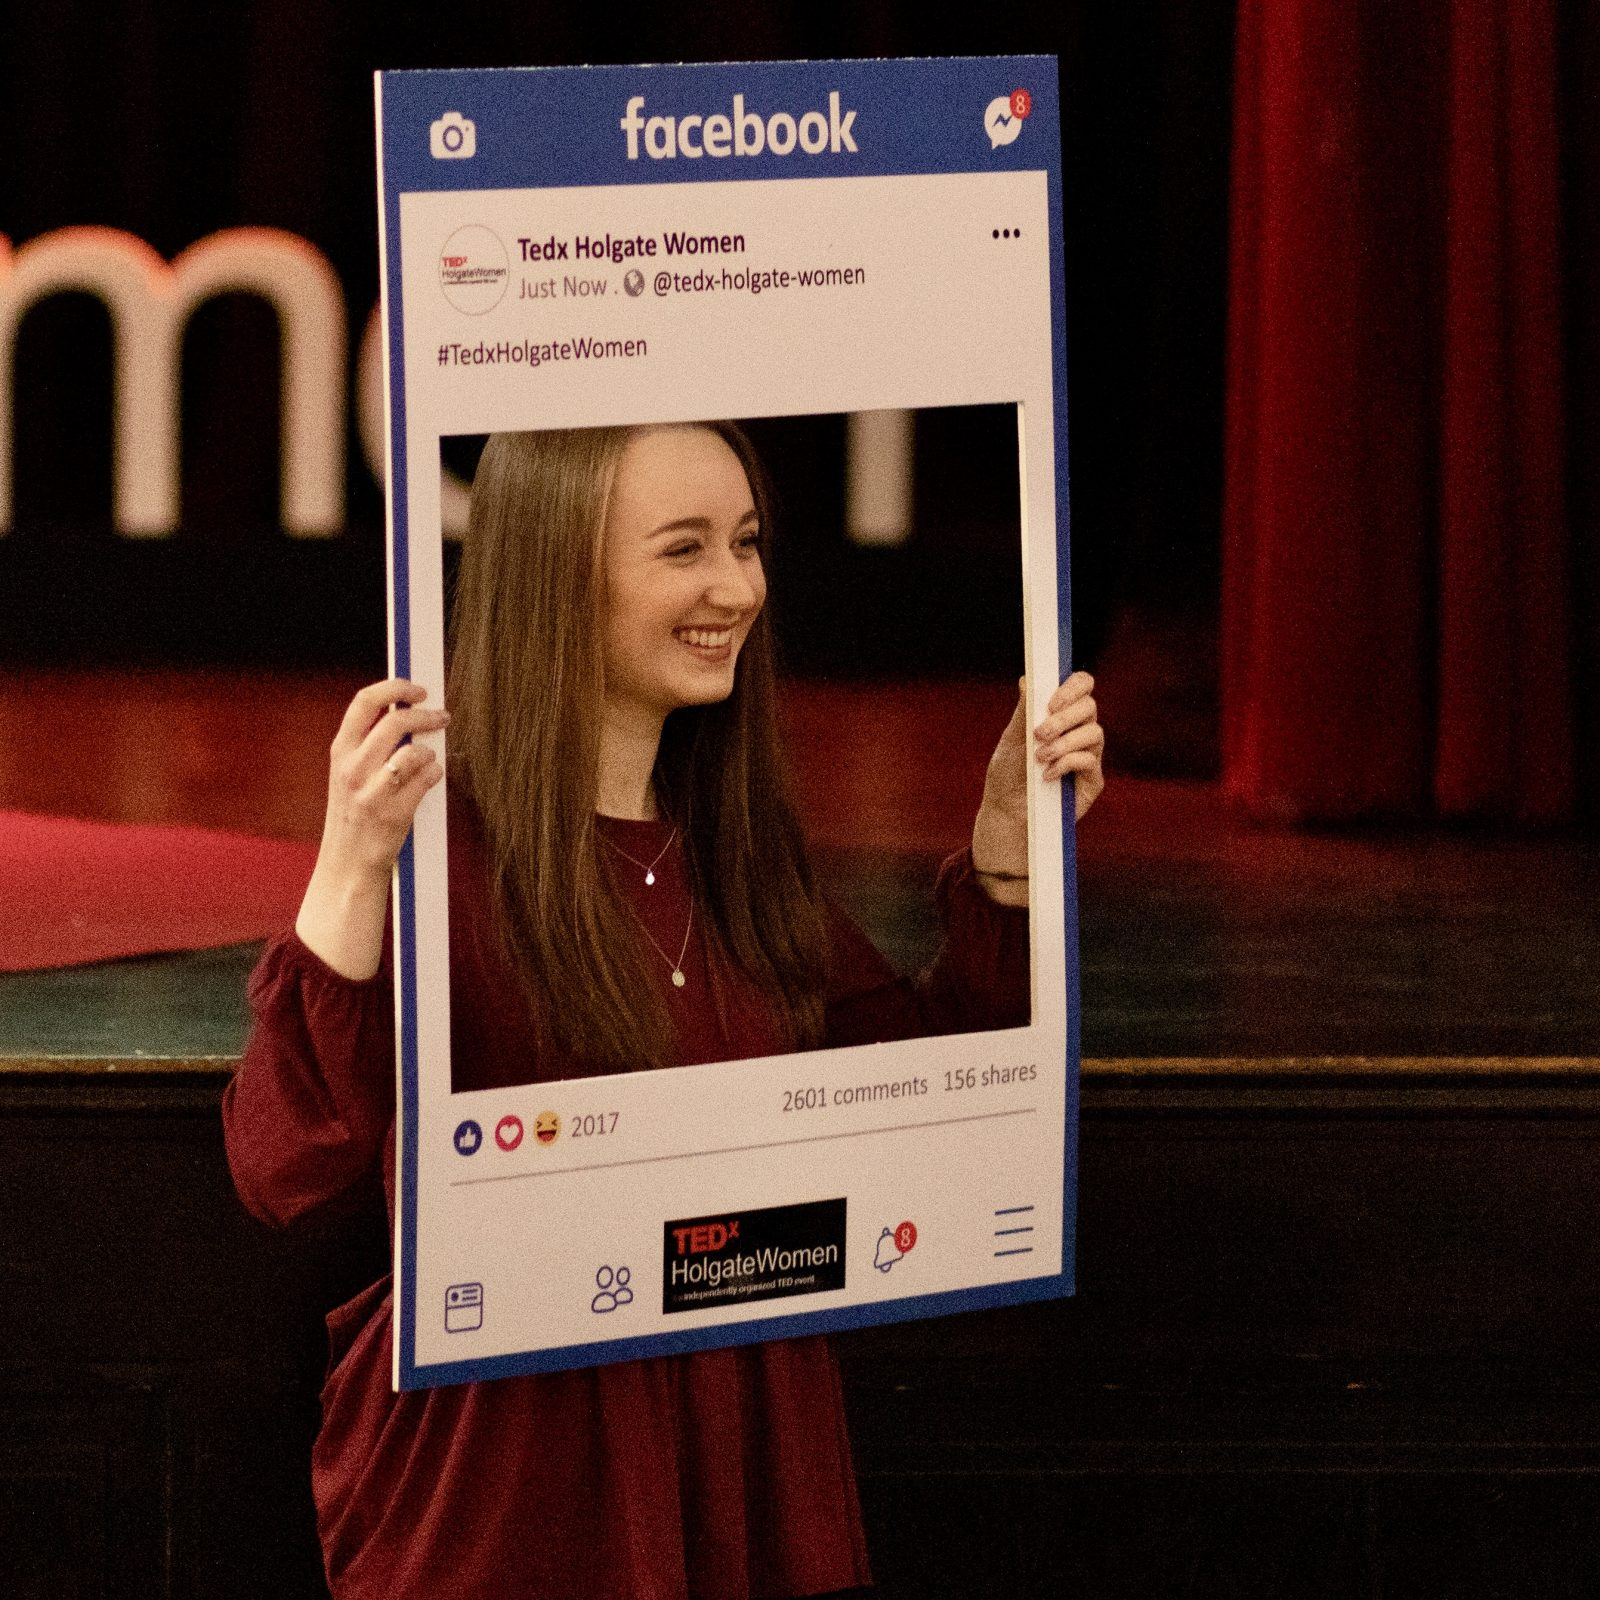 pippa stood holding up social media-style facebook photo board and smiling as somebody else takes a picture of her